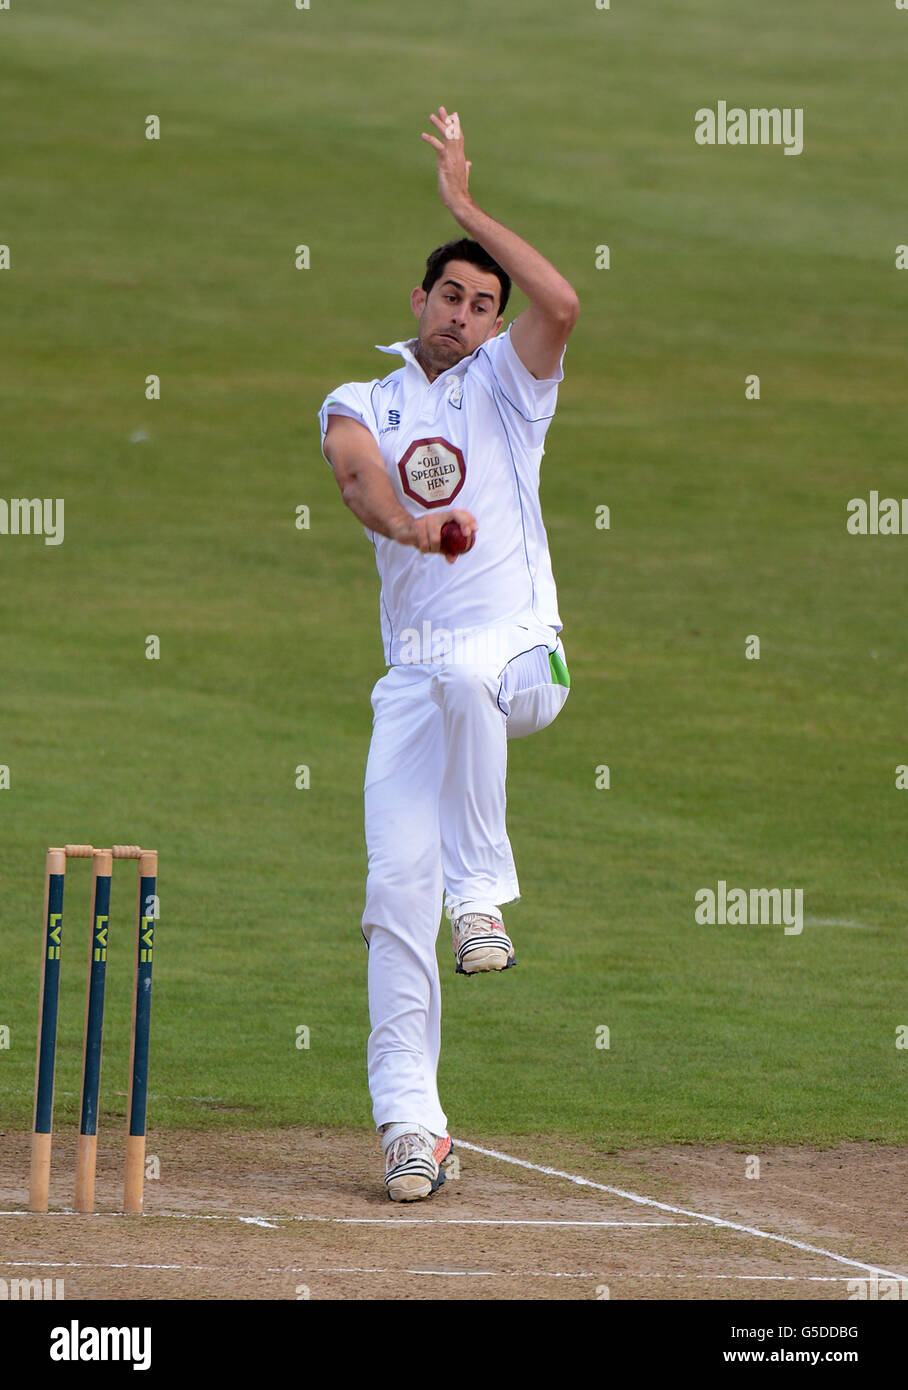 Cricket - LV County Championship - Division two - Northamptonshire v Derbyshire - County Ground - Stock Image